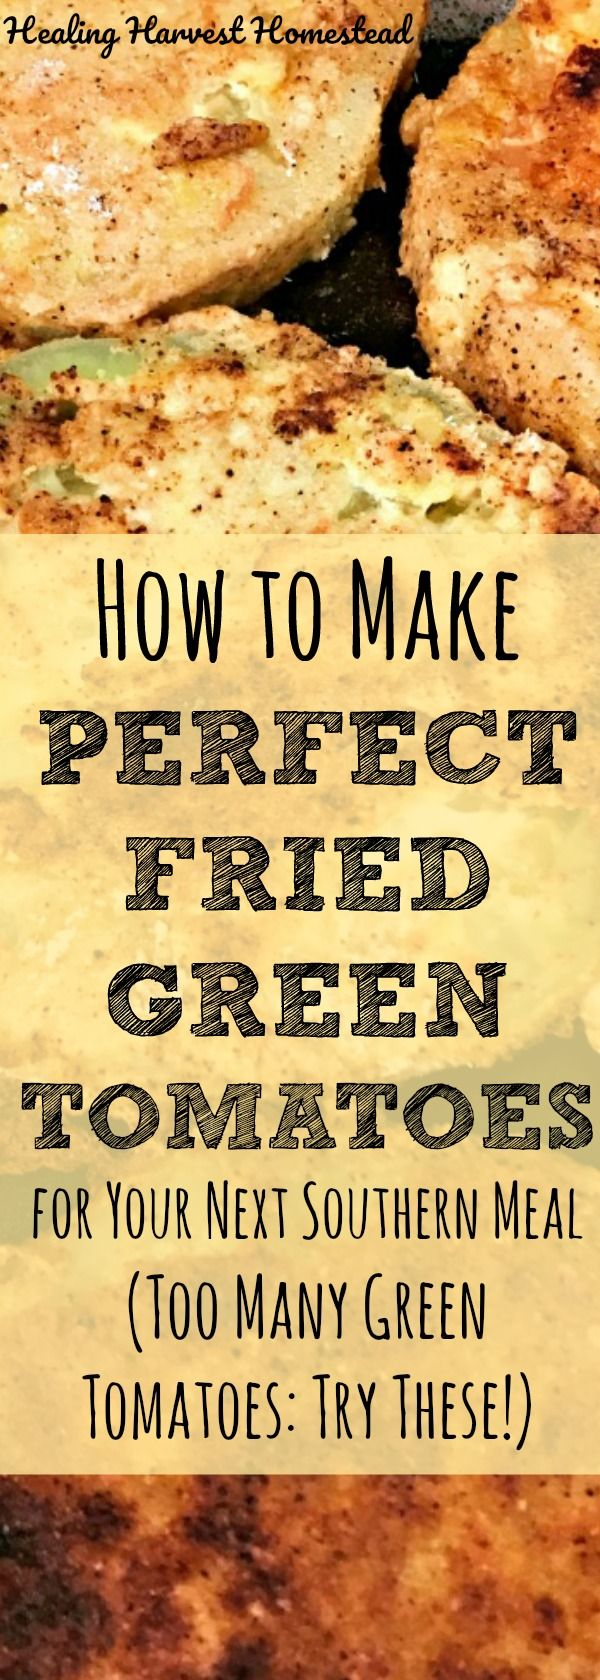 Have you ever thought something sounded horrible...until you tried it? Well, that was my experience with making fried green tomatoes! Here is my recipe and directions for how to make the BEST fried green tomatoes ever! If you have too many green tomatoes, you MUST try making fried green tomatoes for your next Southern meal!